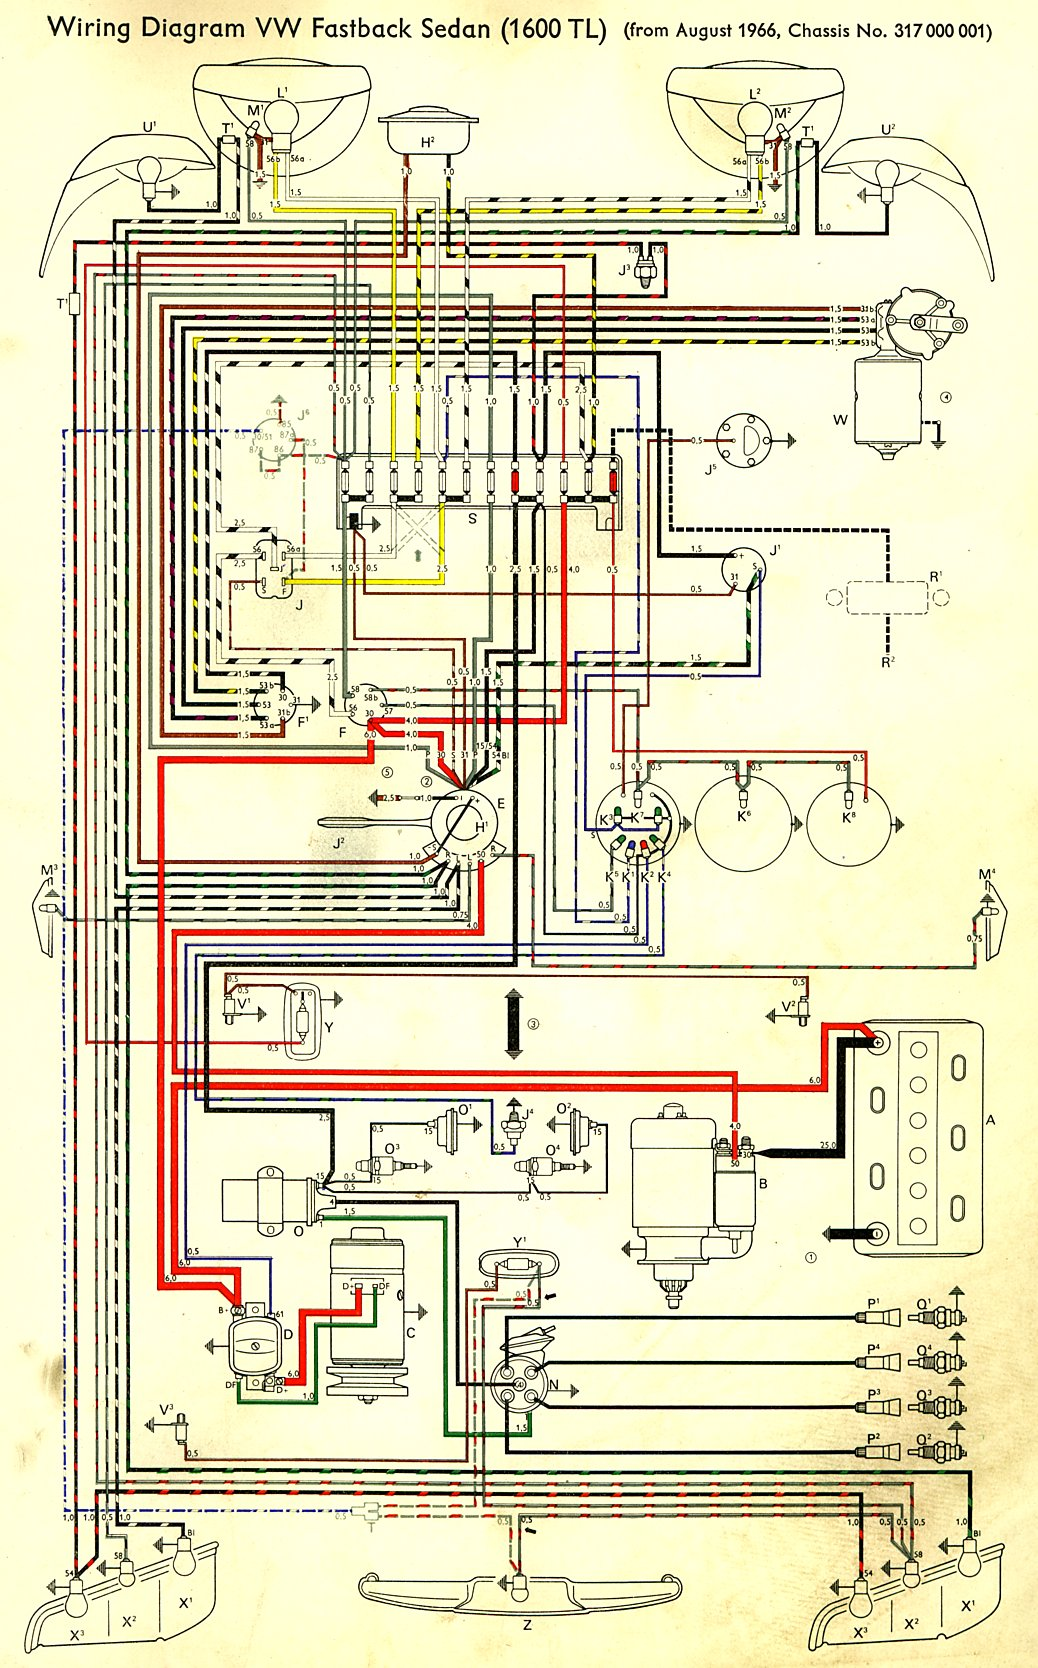 type3_1600TL_67 european wiring diagram hyundai sonata wiring diagram \u2022 free vw wiring diagram symbols at panicattacktreatment.co